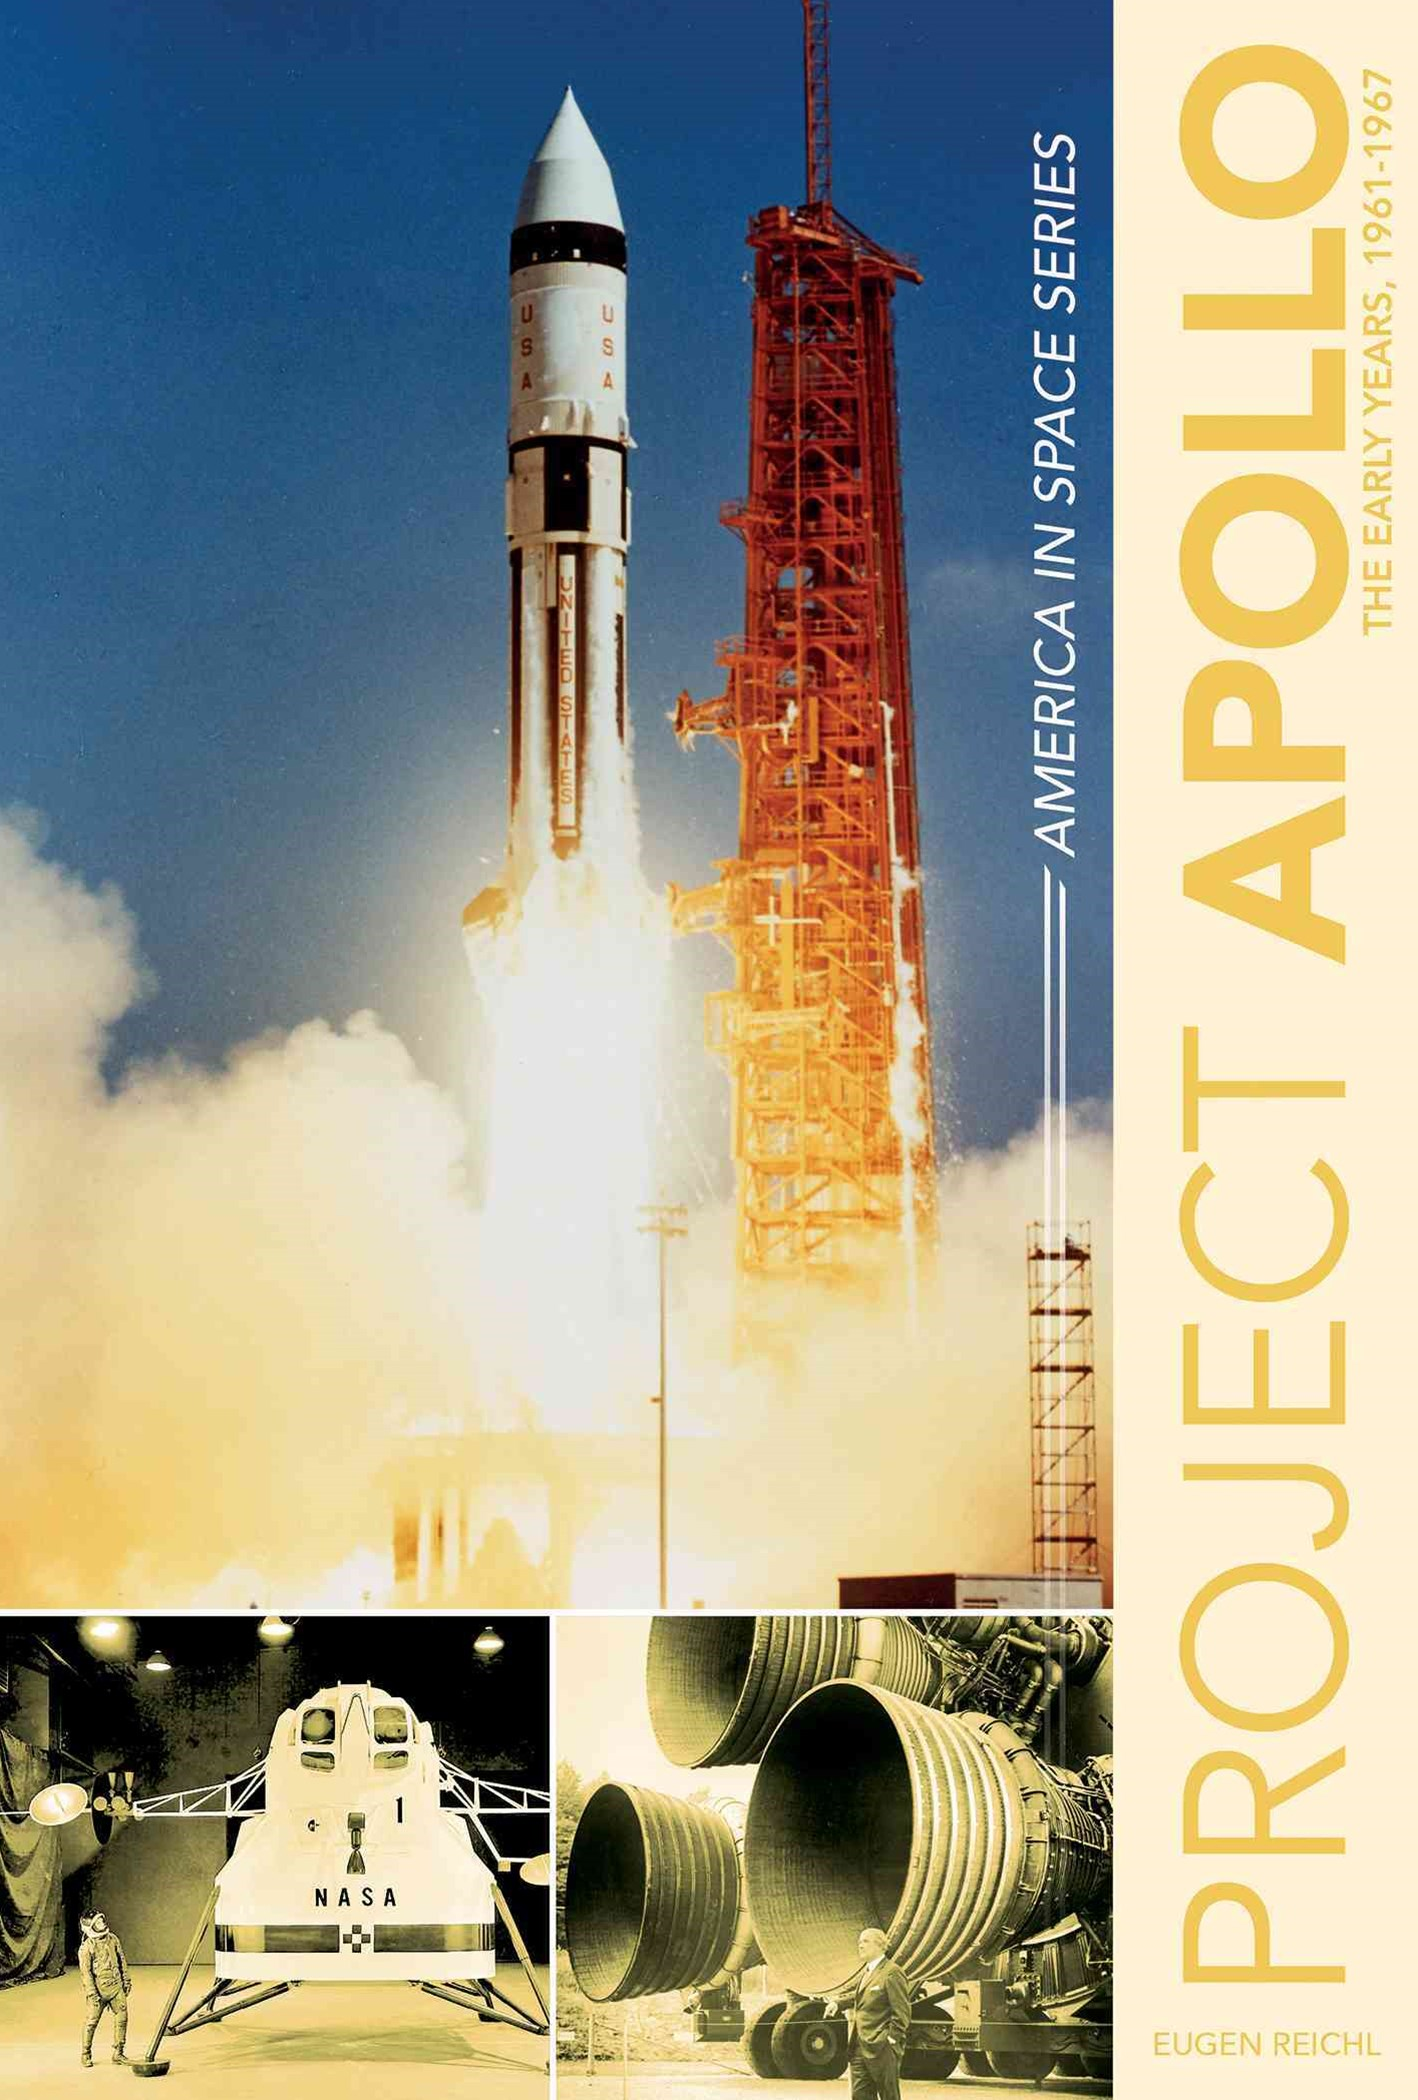 Project Apollo: The Early Years, 1961-1967